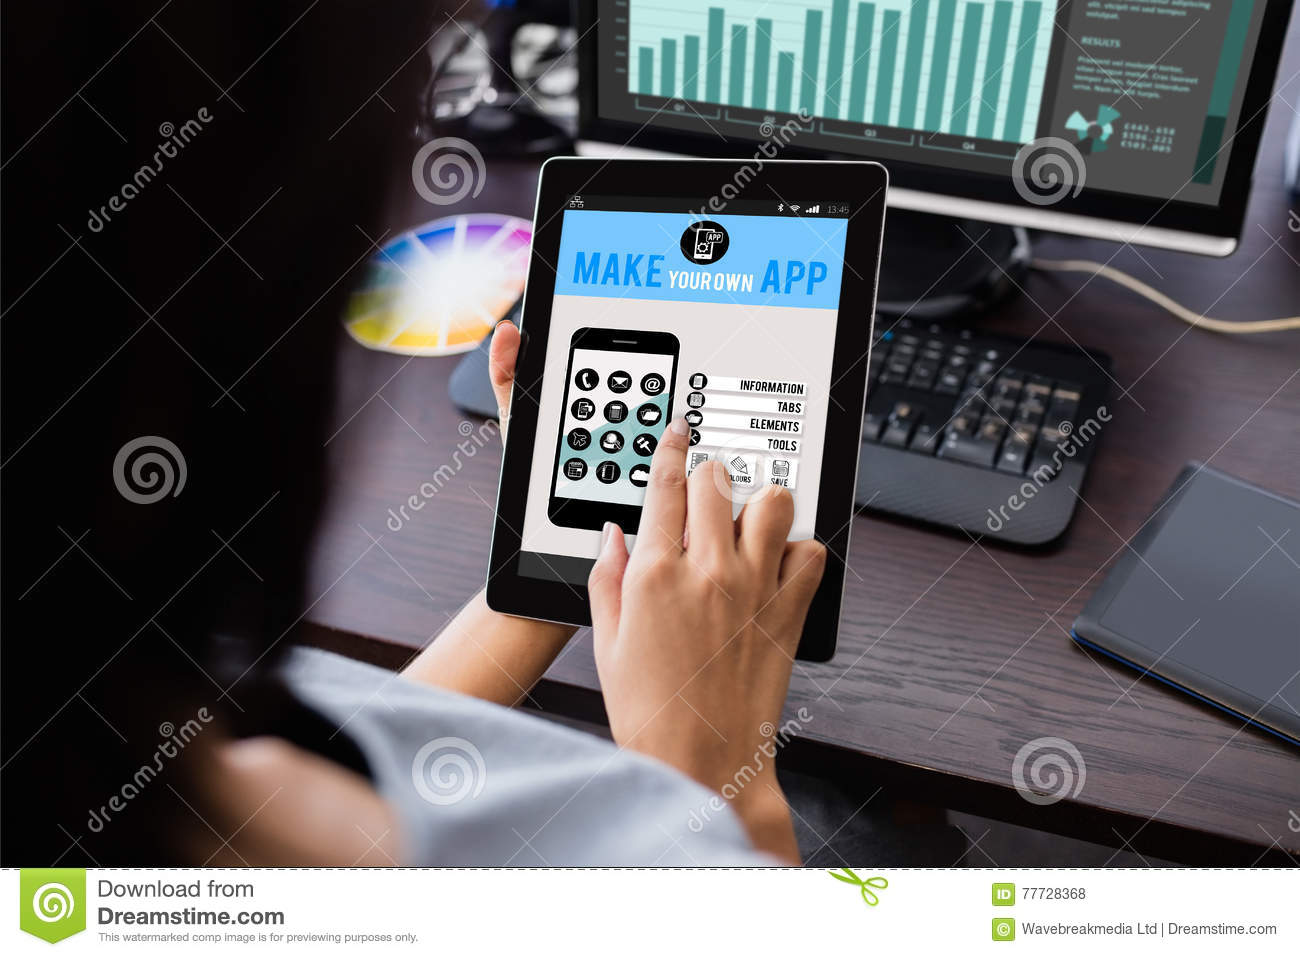 Composite Image Of Make Your Own App Smartphone Royalty Free Stock Image